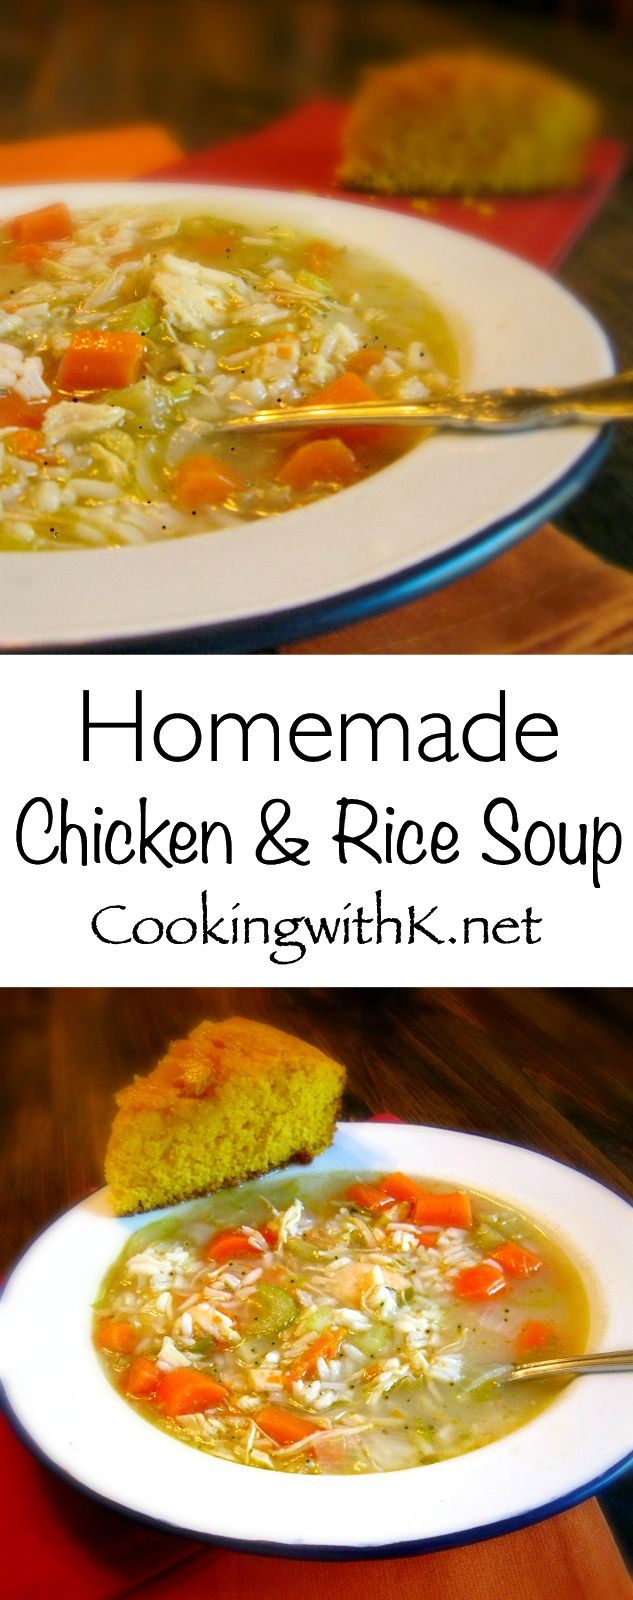 Cooking with K: Homemade Chicken & Rice Soup